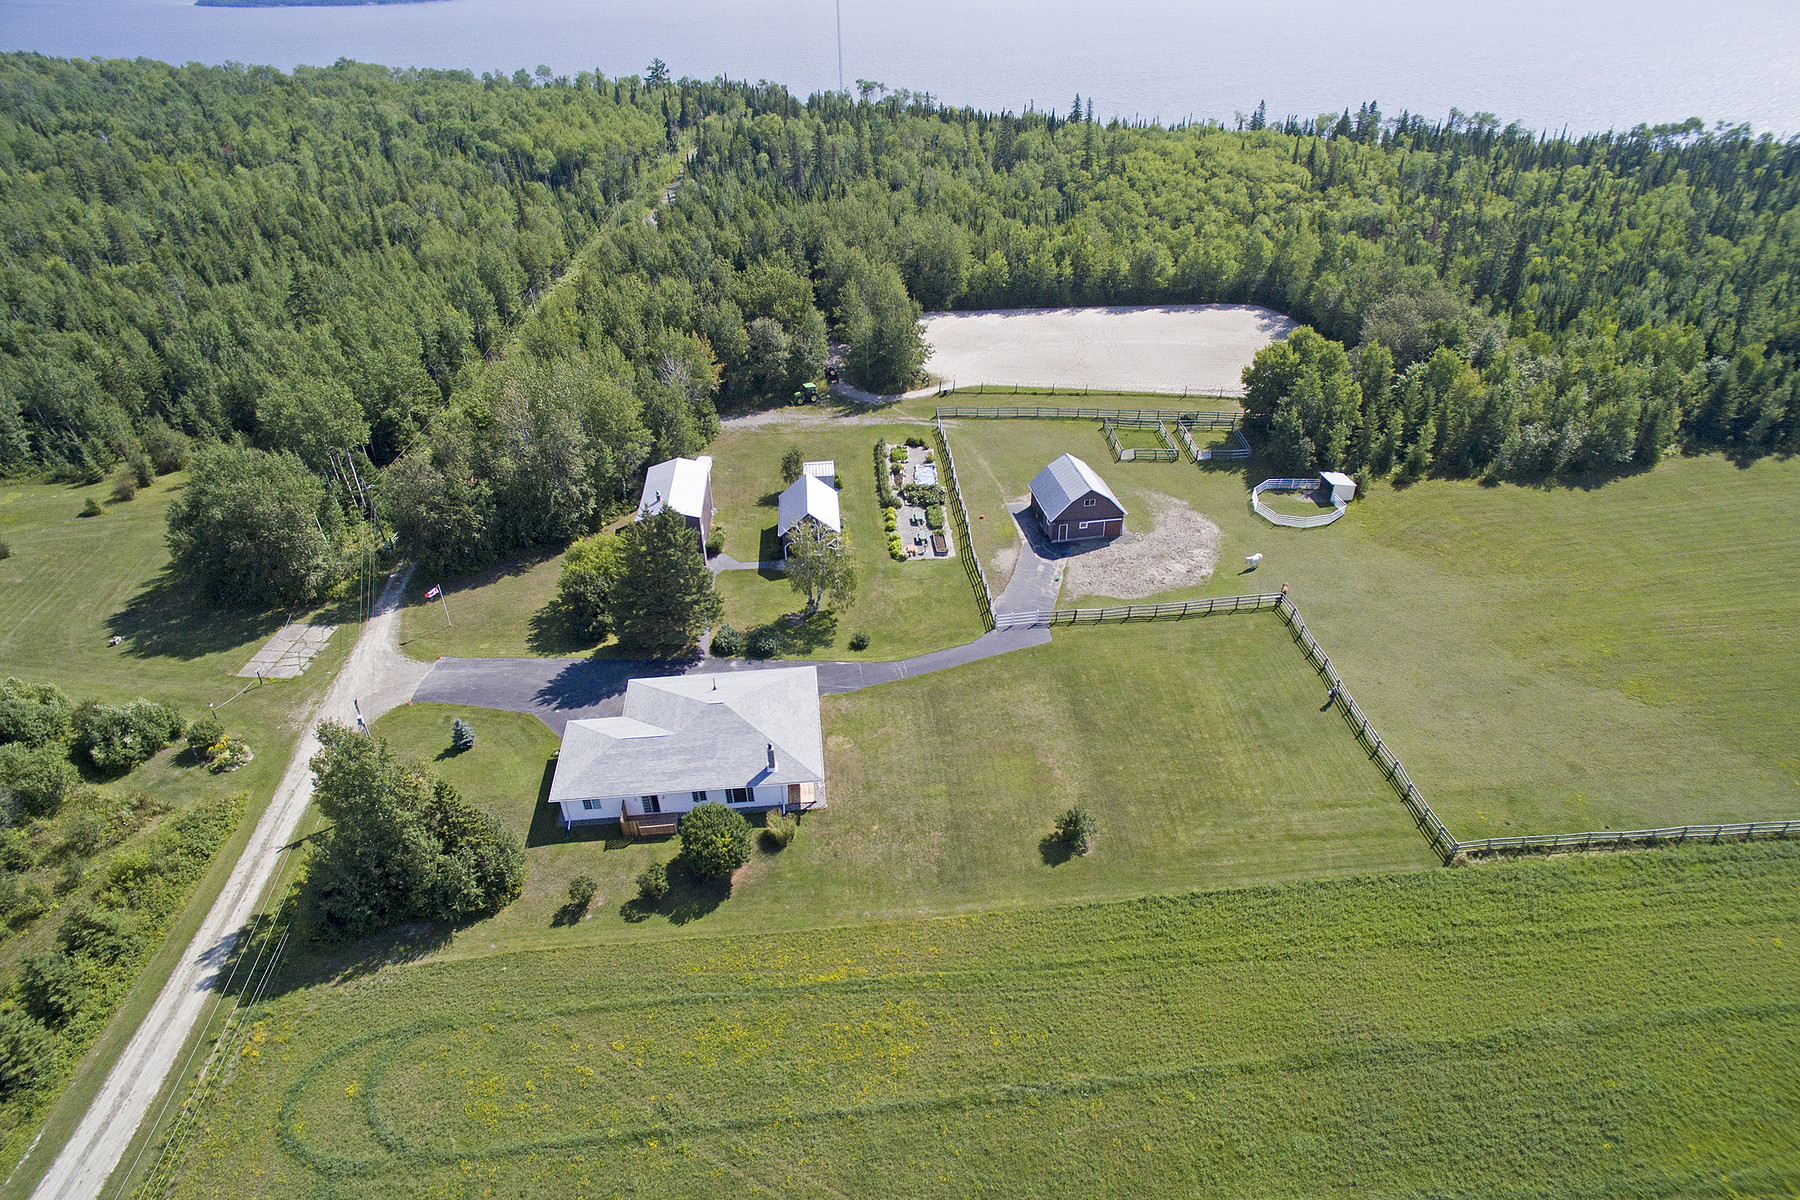 其它住宅 为 销售 在 Lake Temiskaming 681546 Vahey Road 新利斯卡德, 安大略省, P0J 1P0 加拿大